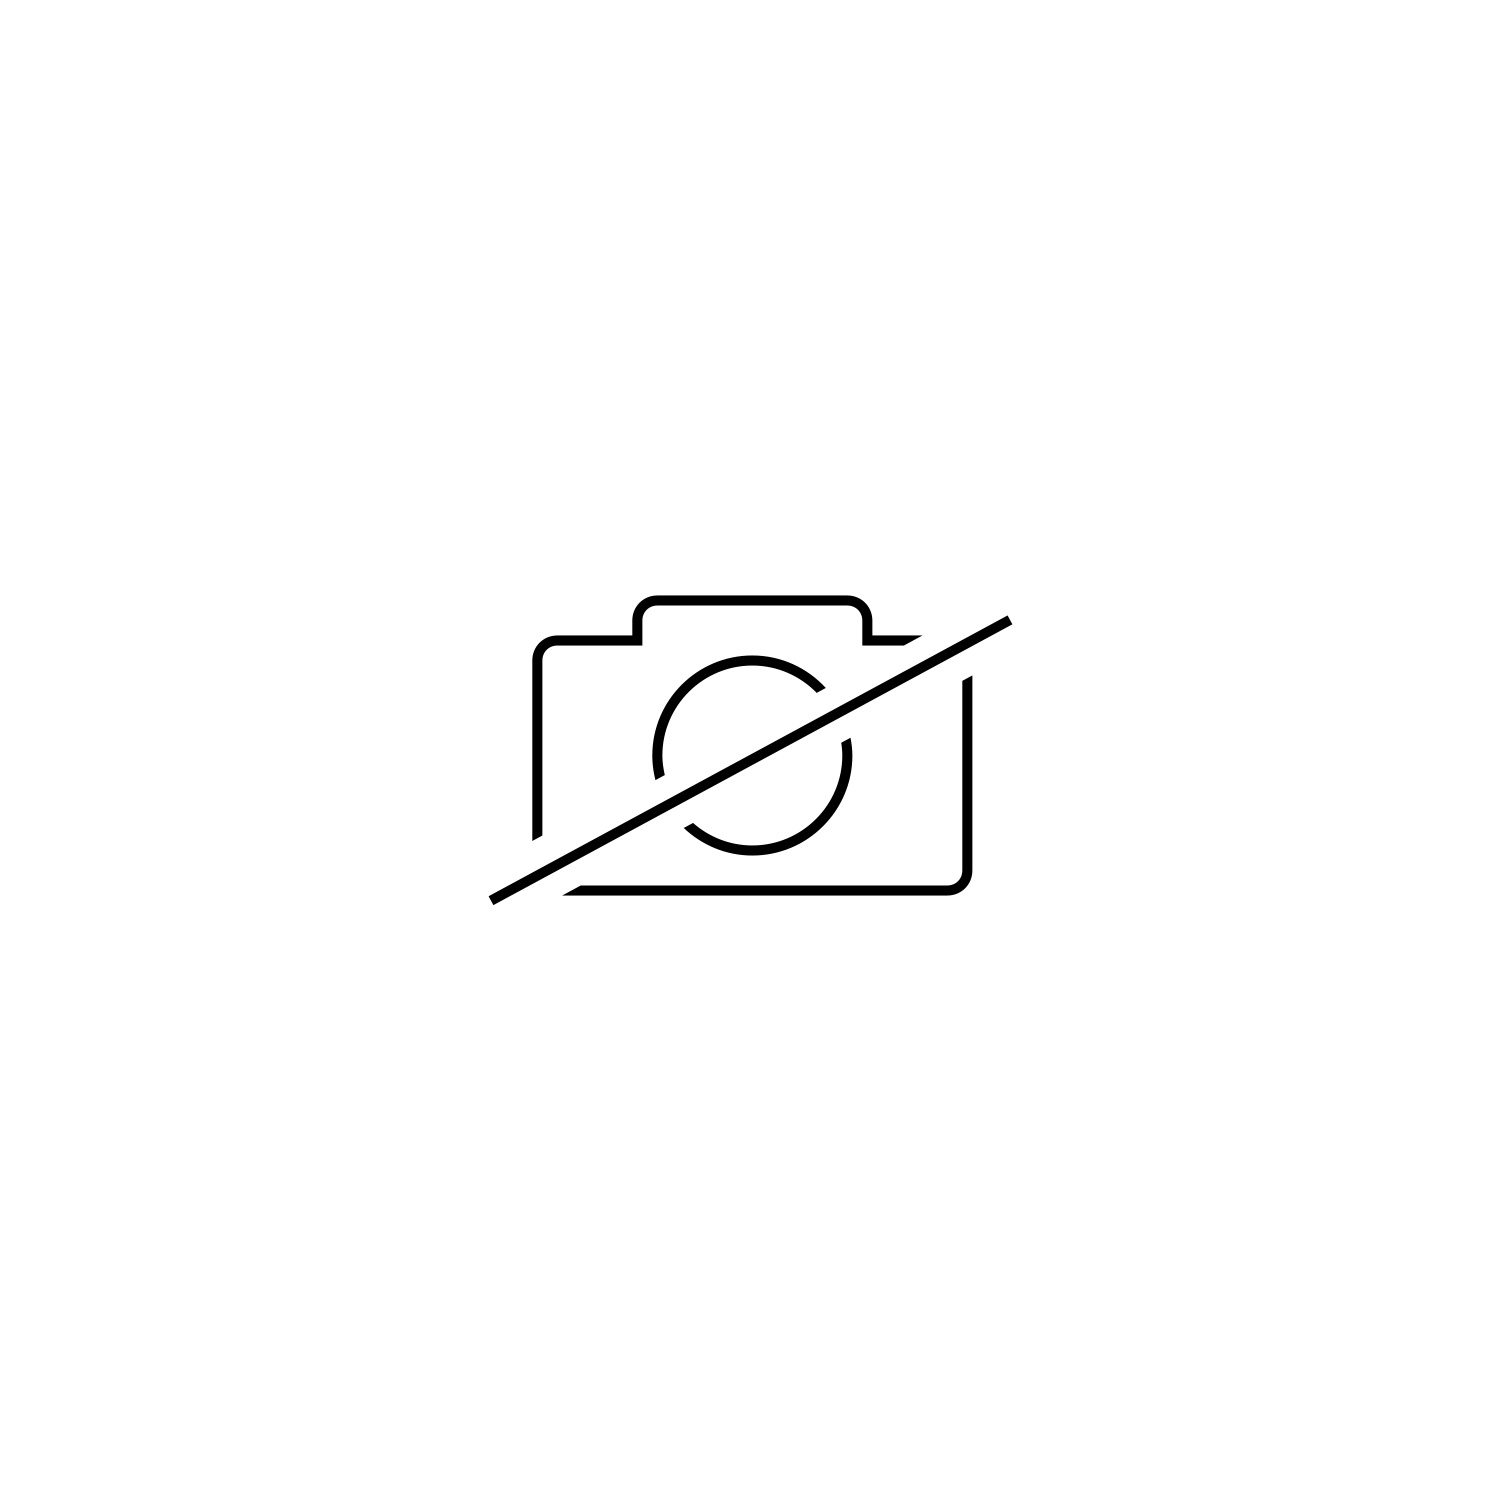 heritage Poloshirt, Mens, offwhite, S